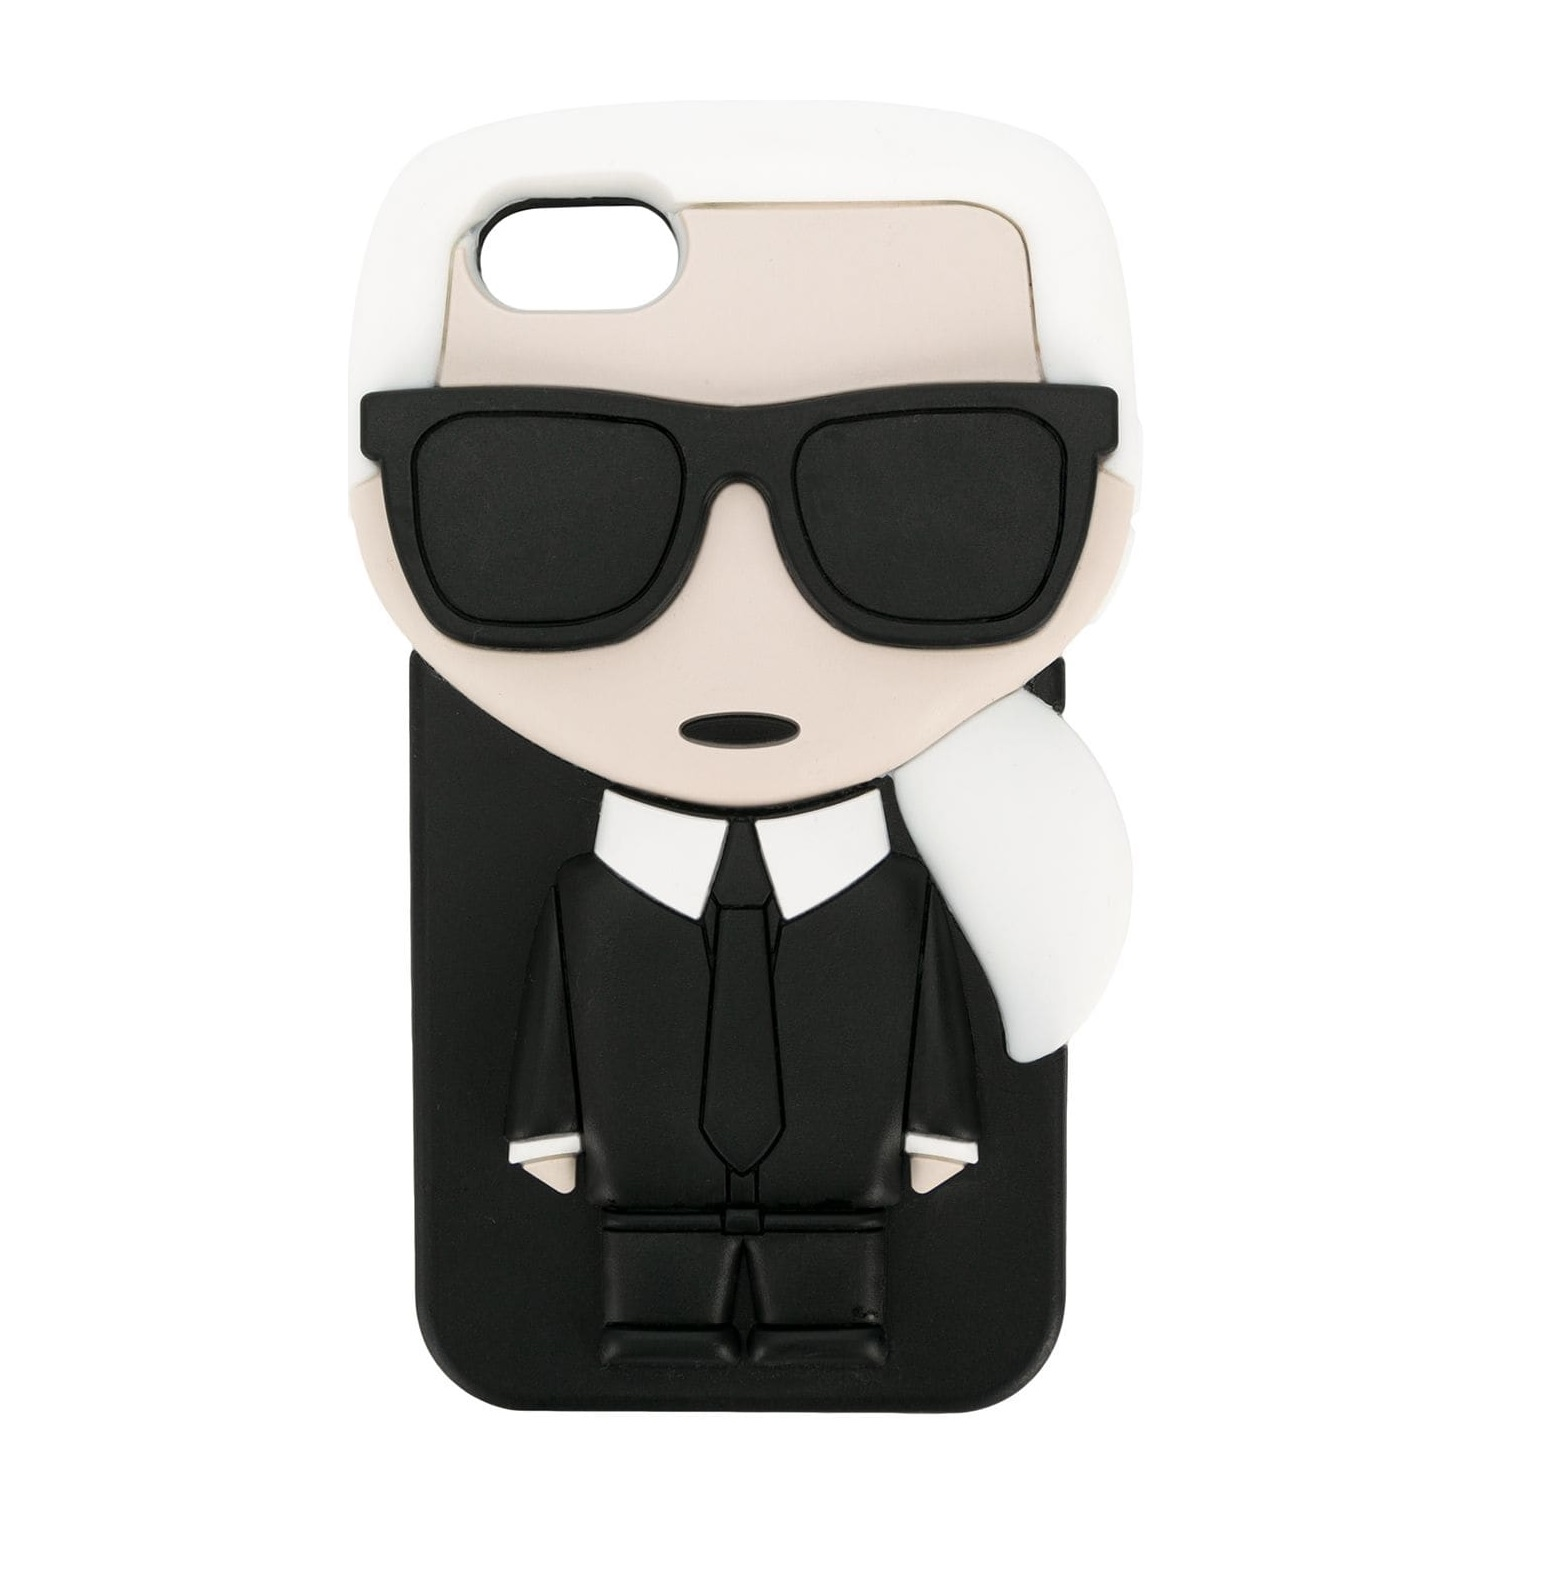 3D Karl Ikonik iPhone Case